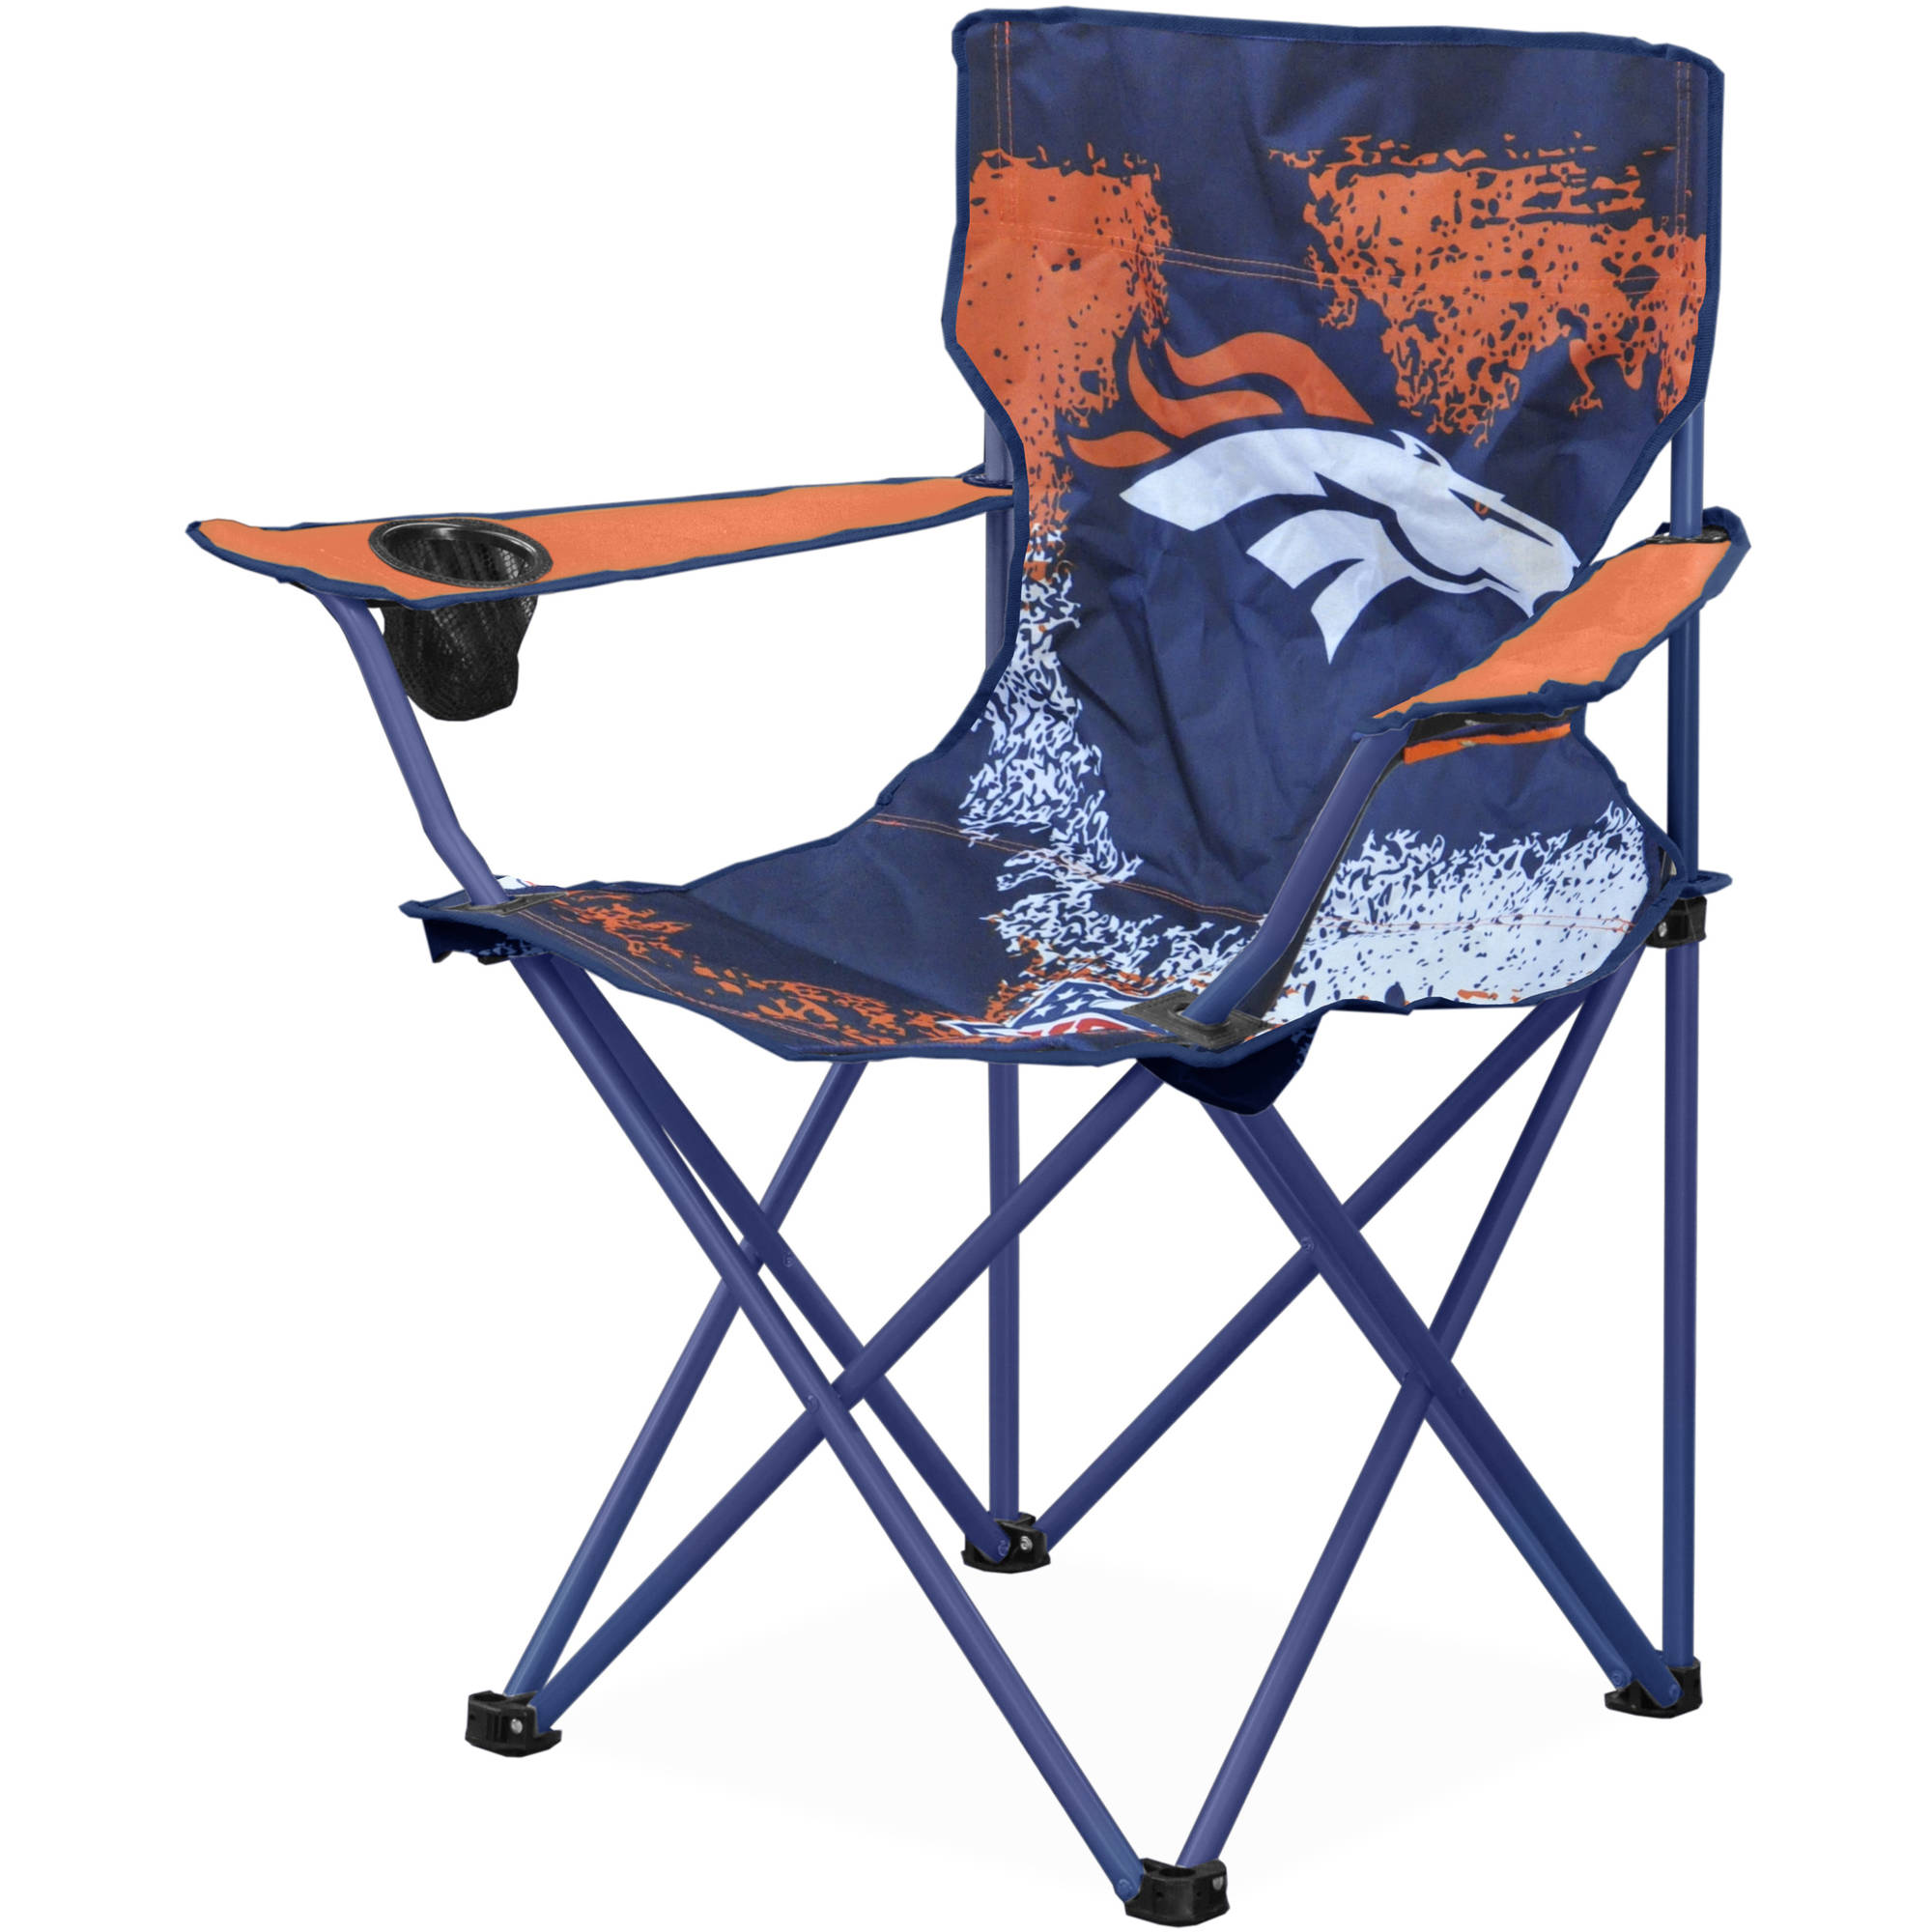 49ers camping chair tablecloths covers and sashes nfl denver broncos tween camp walmart com